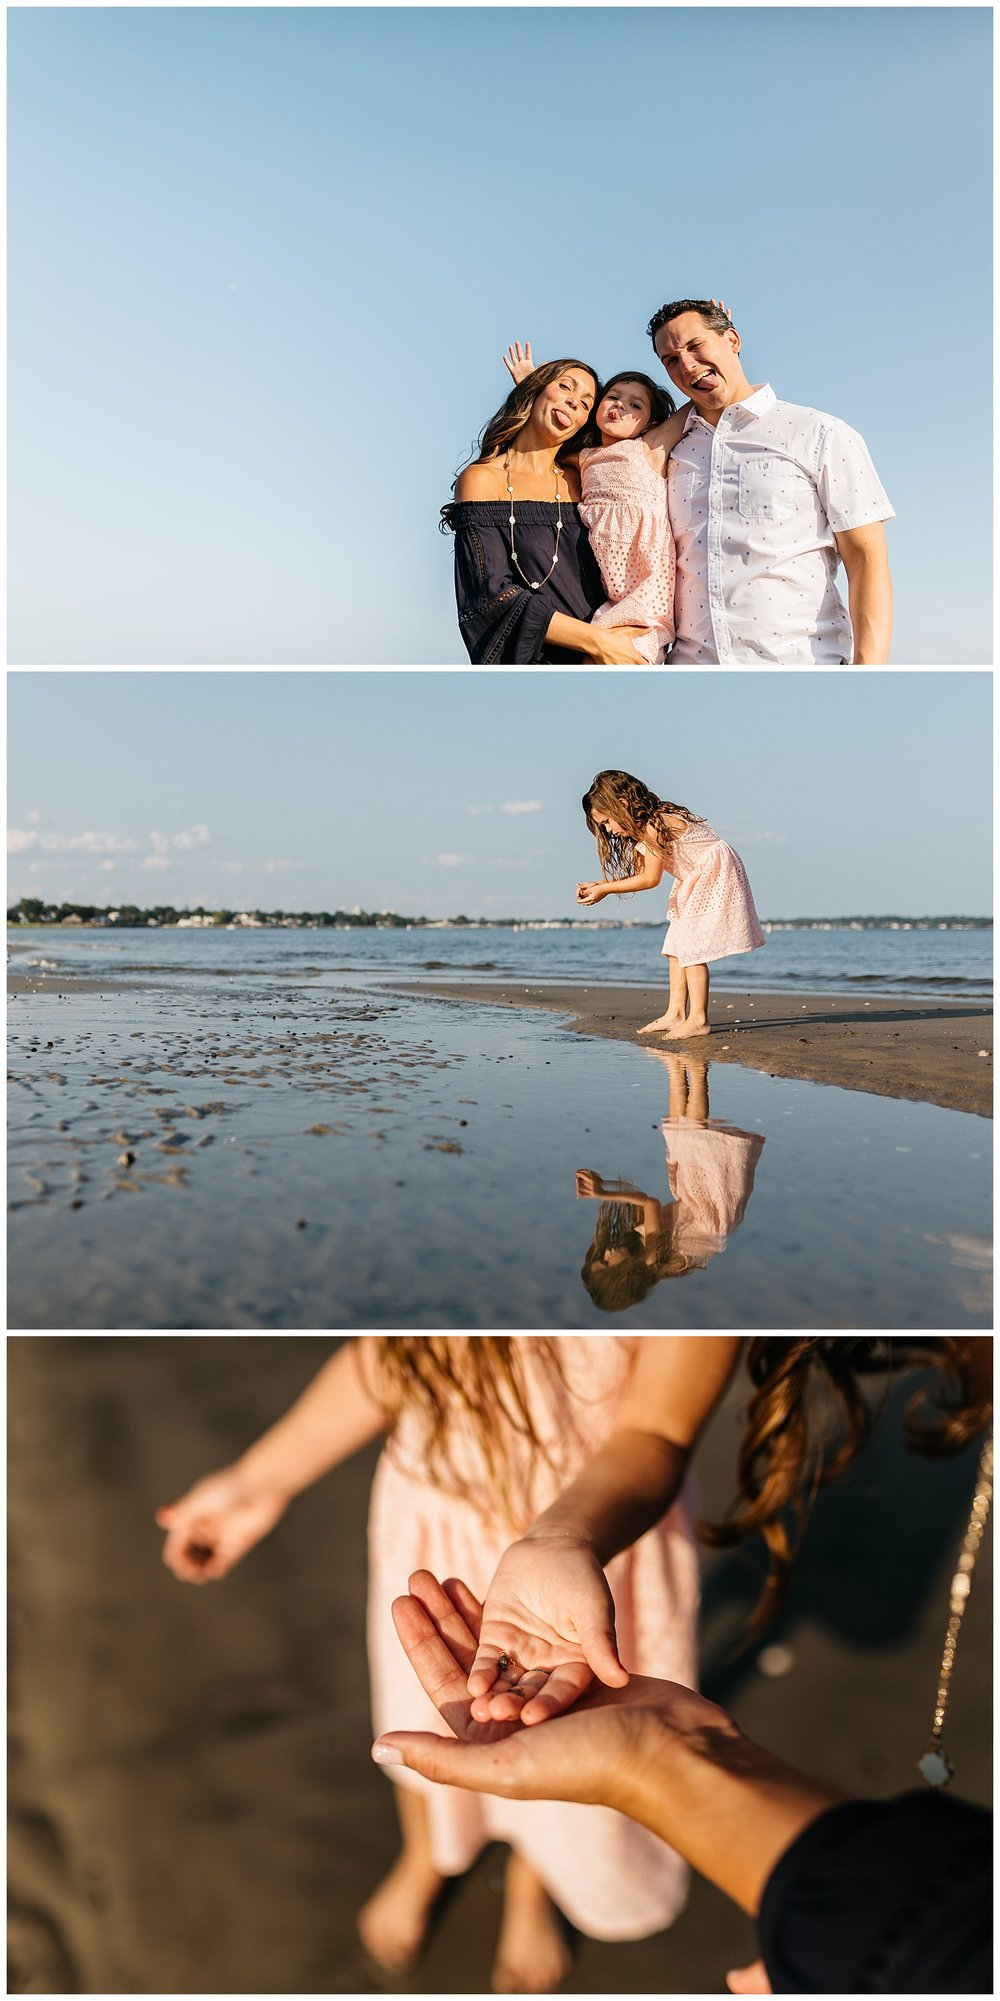 tods point family session by laura barr photography